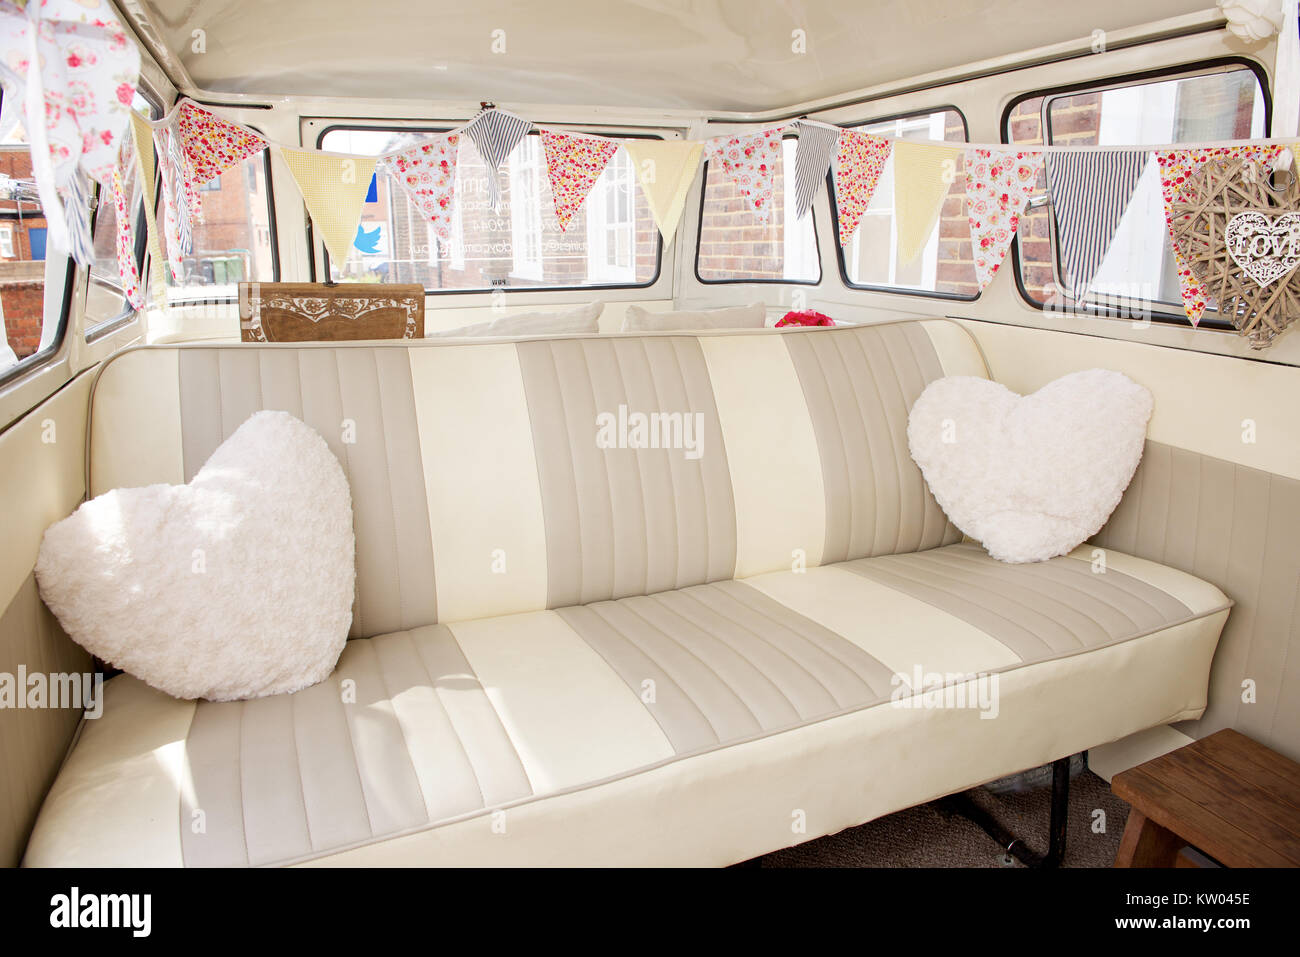 Interior Of A VW Camper Van As A Wedding Vehicle   Stock Image